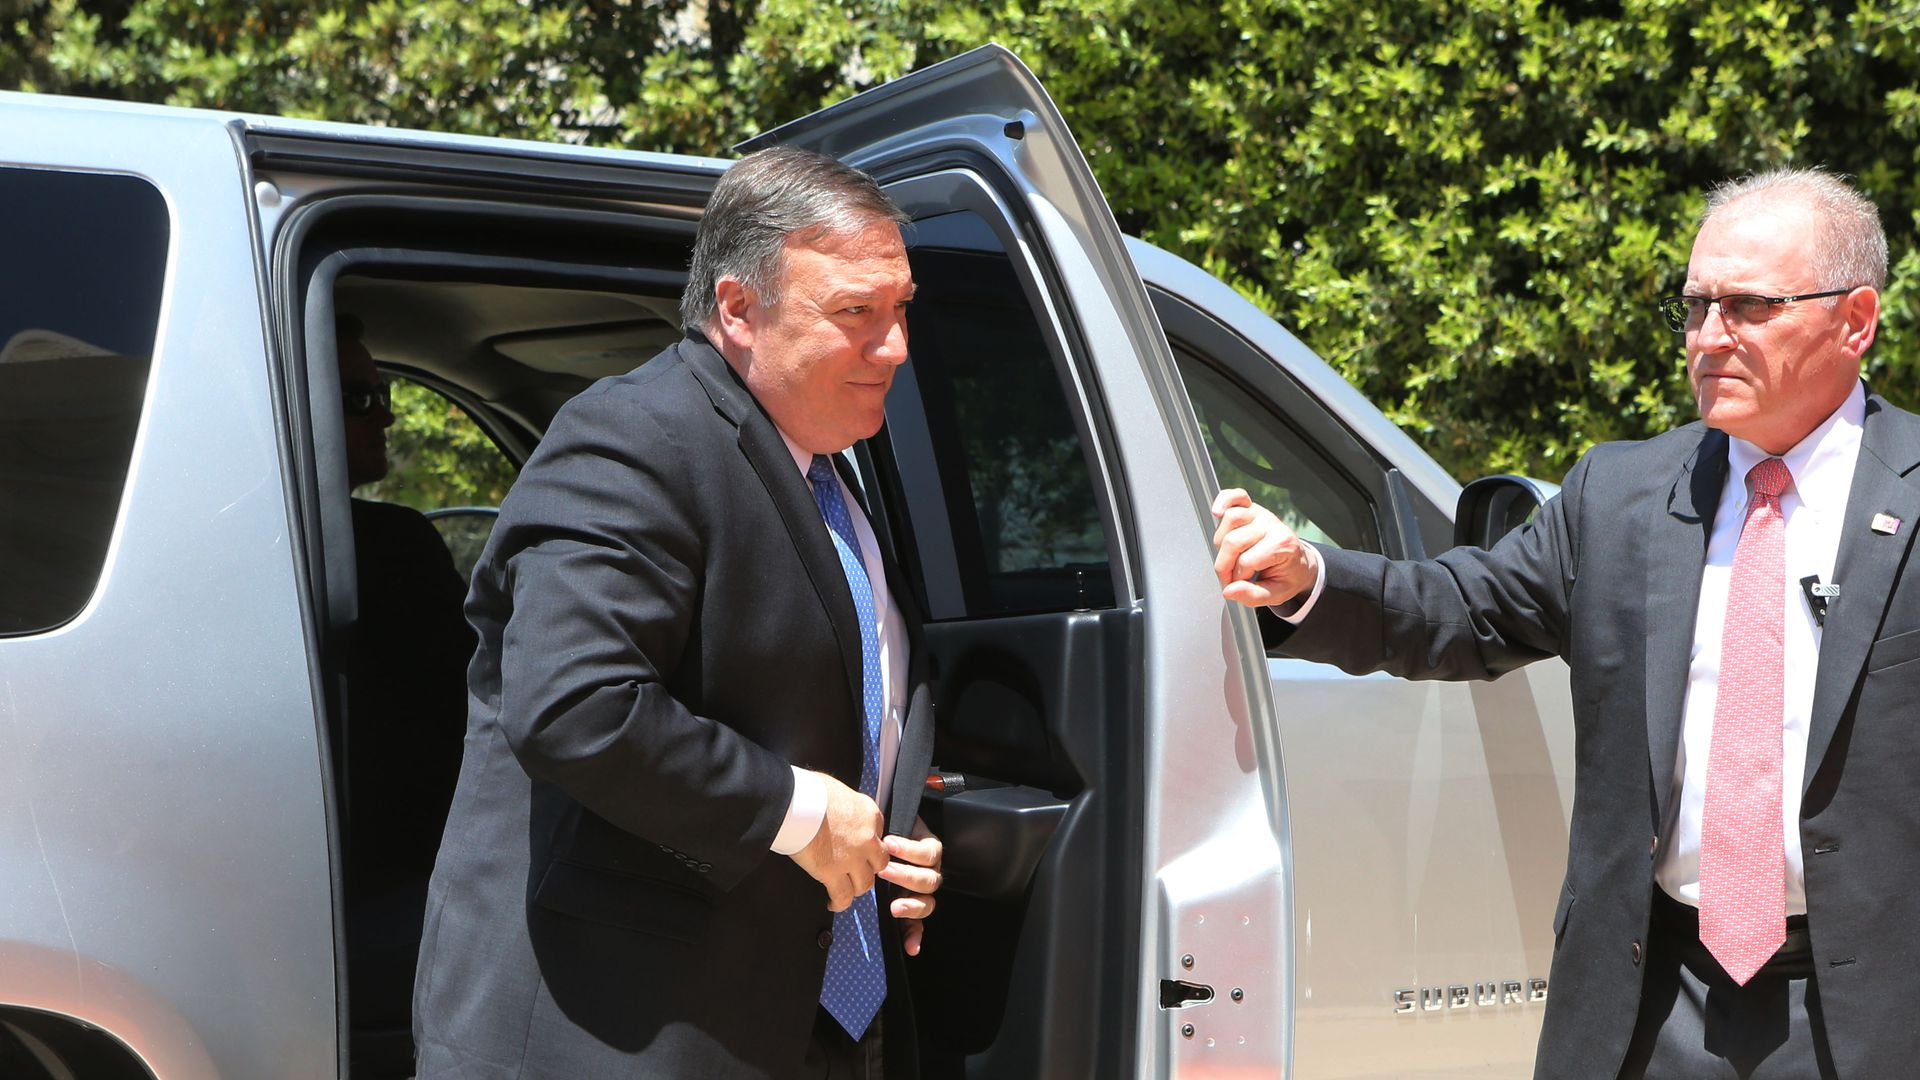 Mike Pompeo pulls his suitcoat together to button it as he steps out of a silver car.